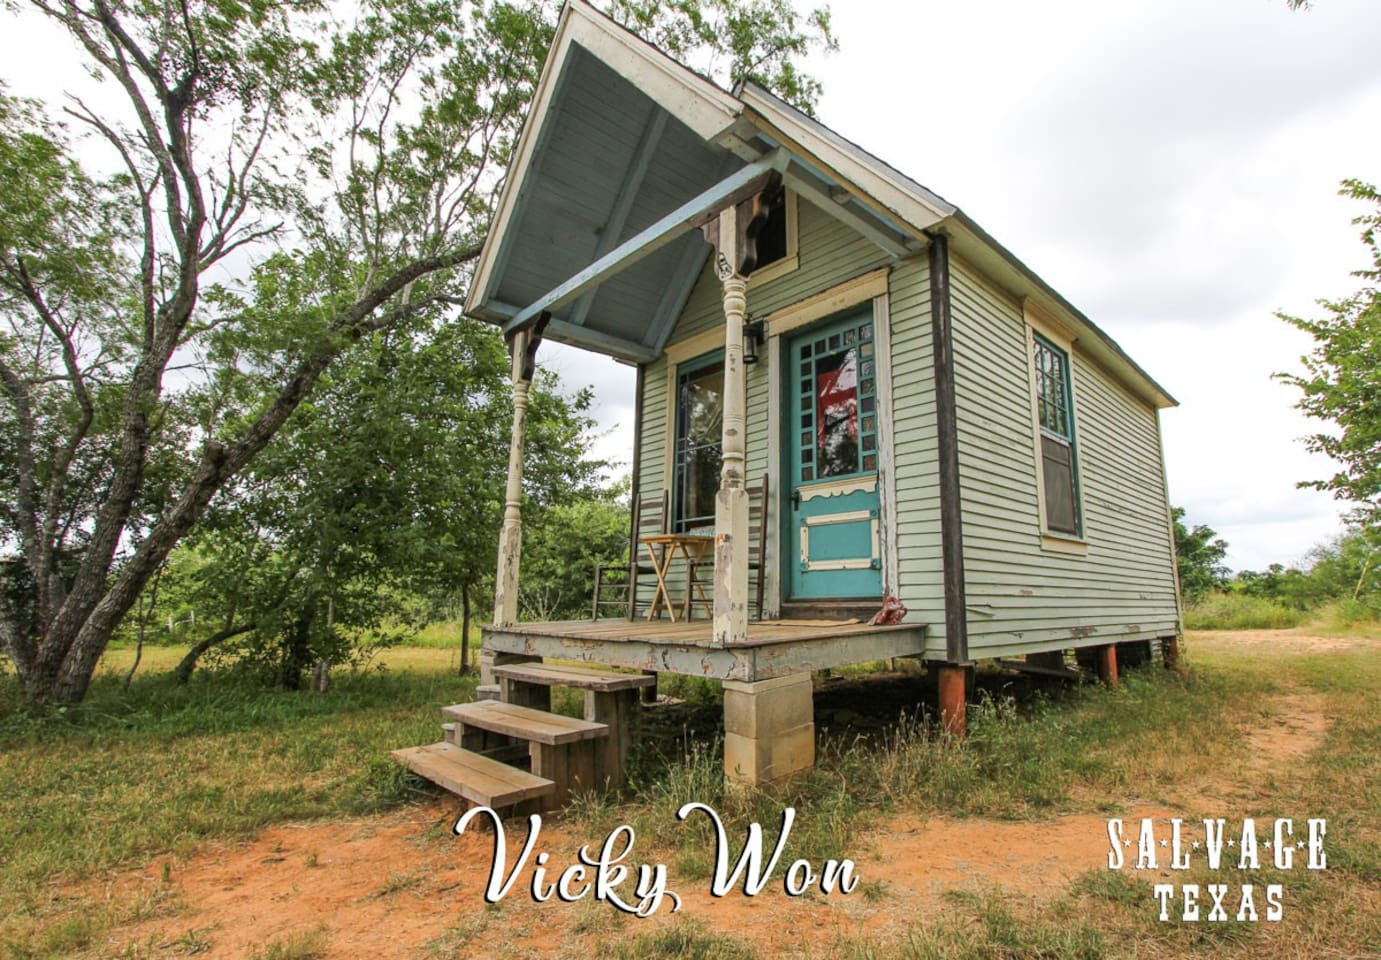 The Vicky Won is one of the original Tiny Texas House designs.